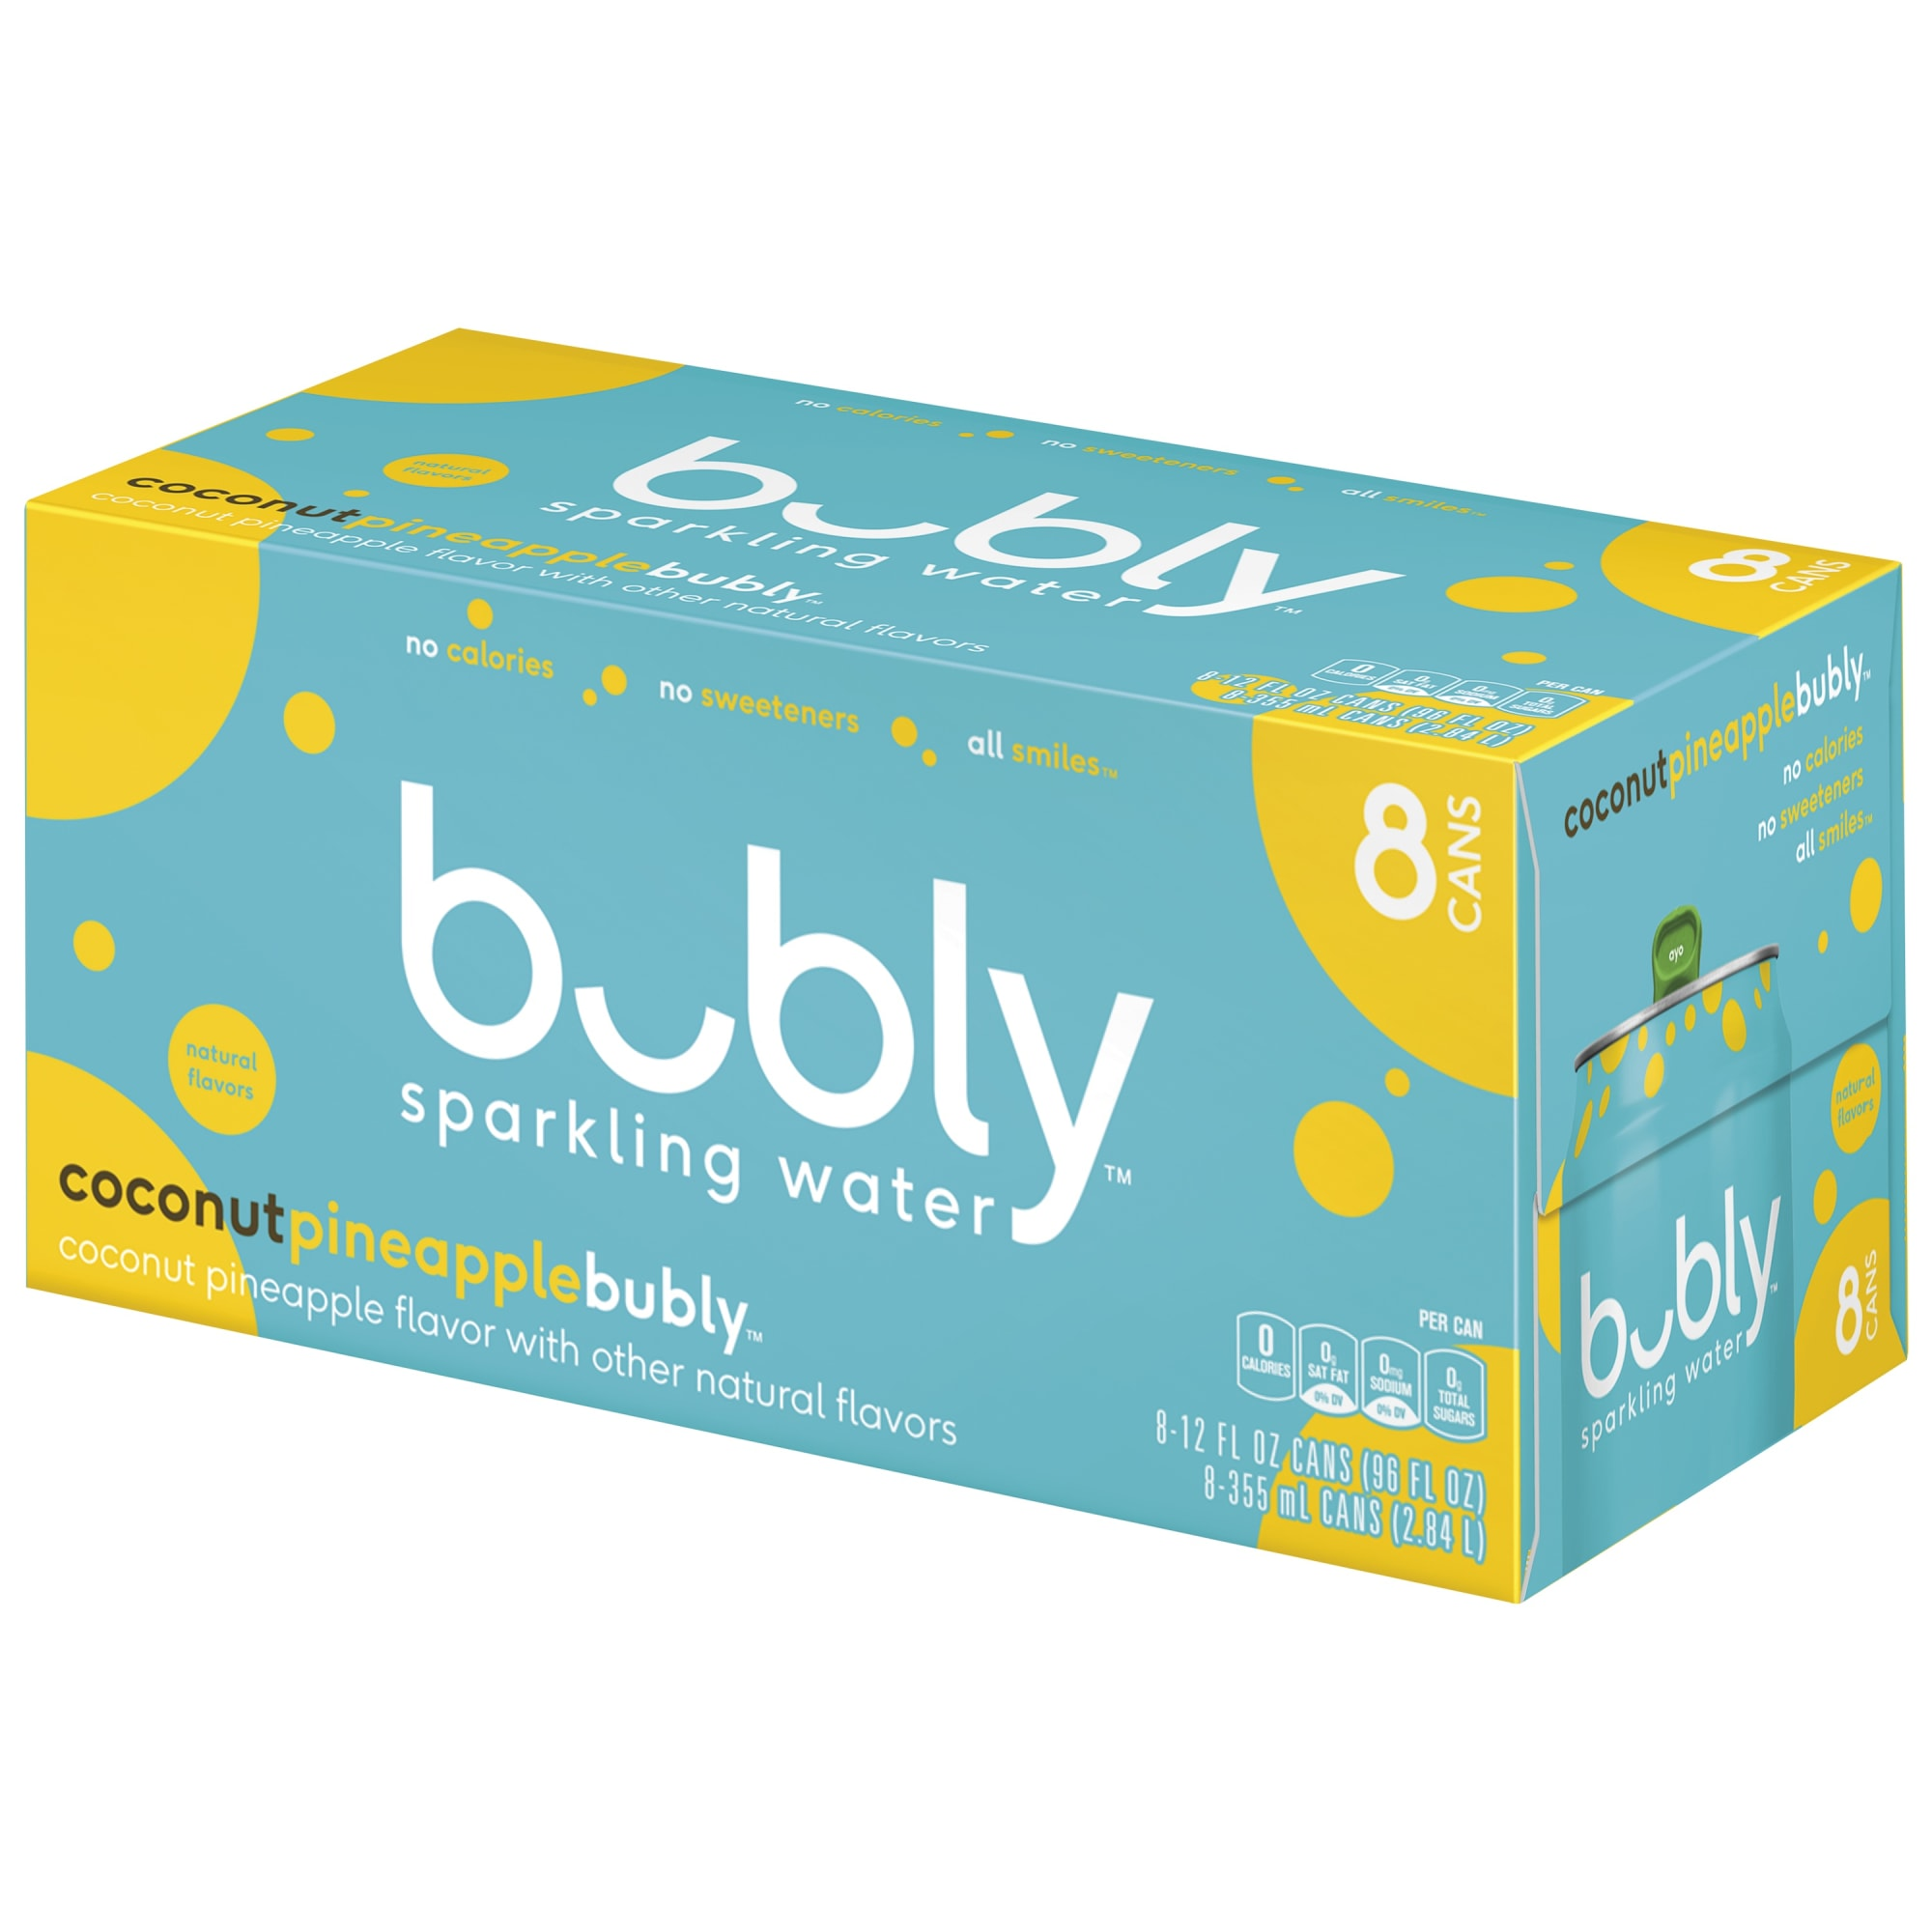 New bubly coconut pineapple brings tropical flavors to summer beverages